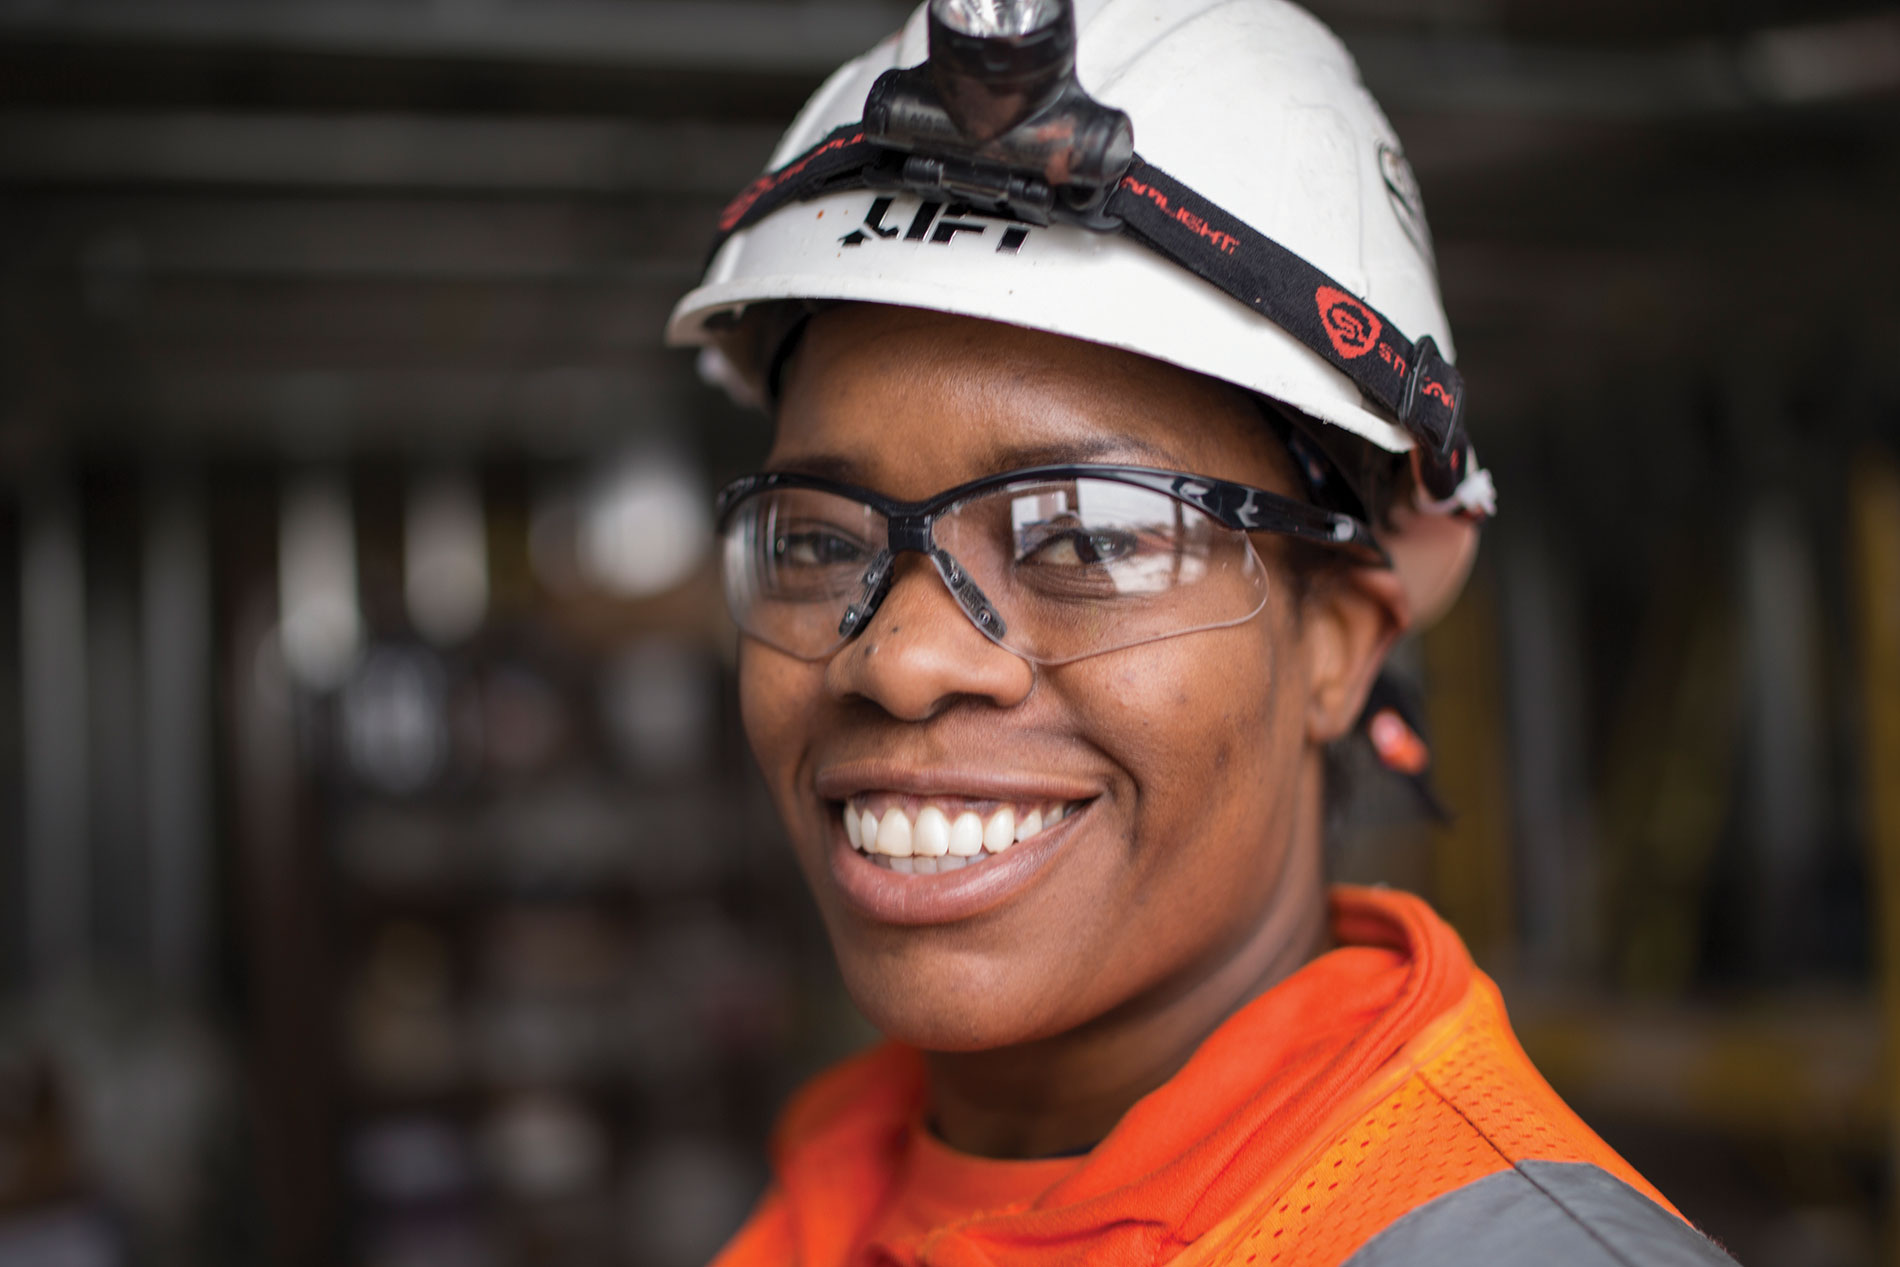 Isis Harris / Image Courtesy of NECA/IBEW Local 48 Electrical Training Center